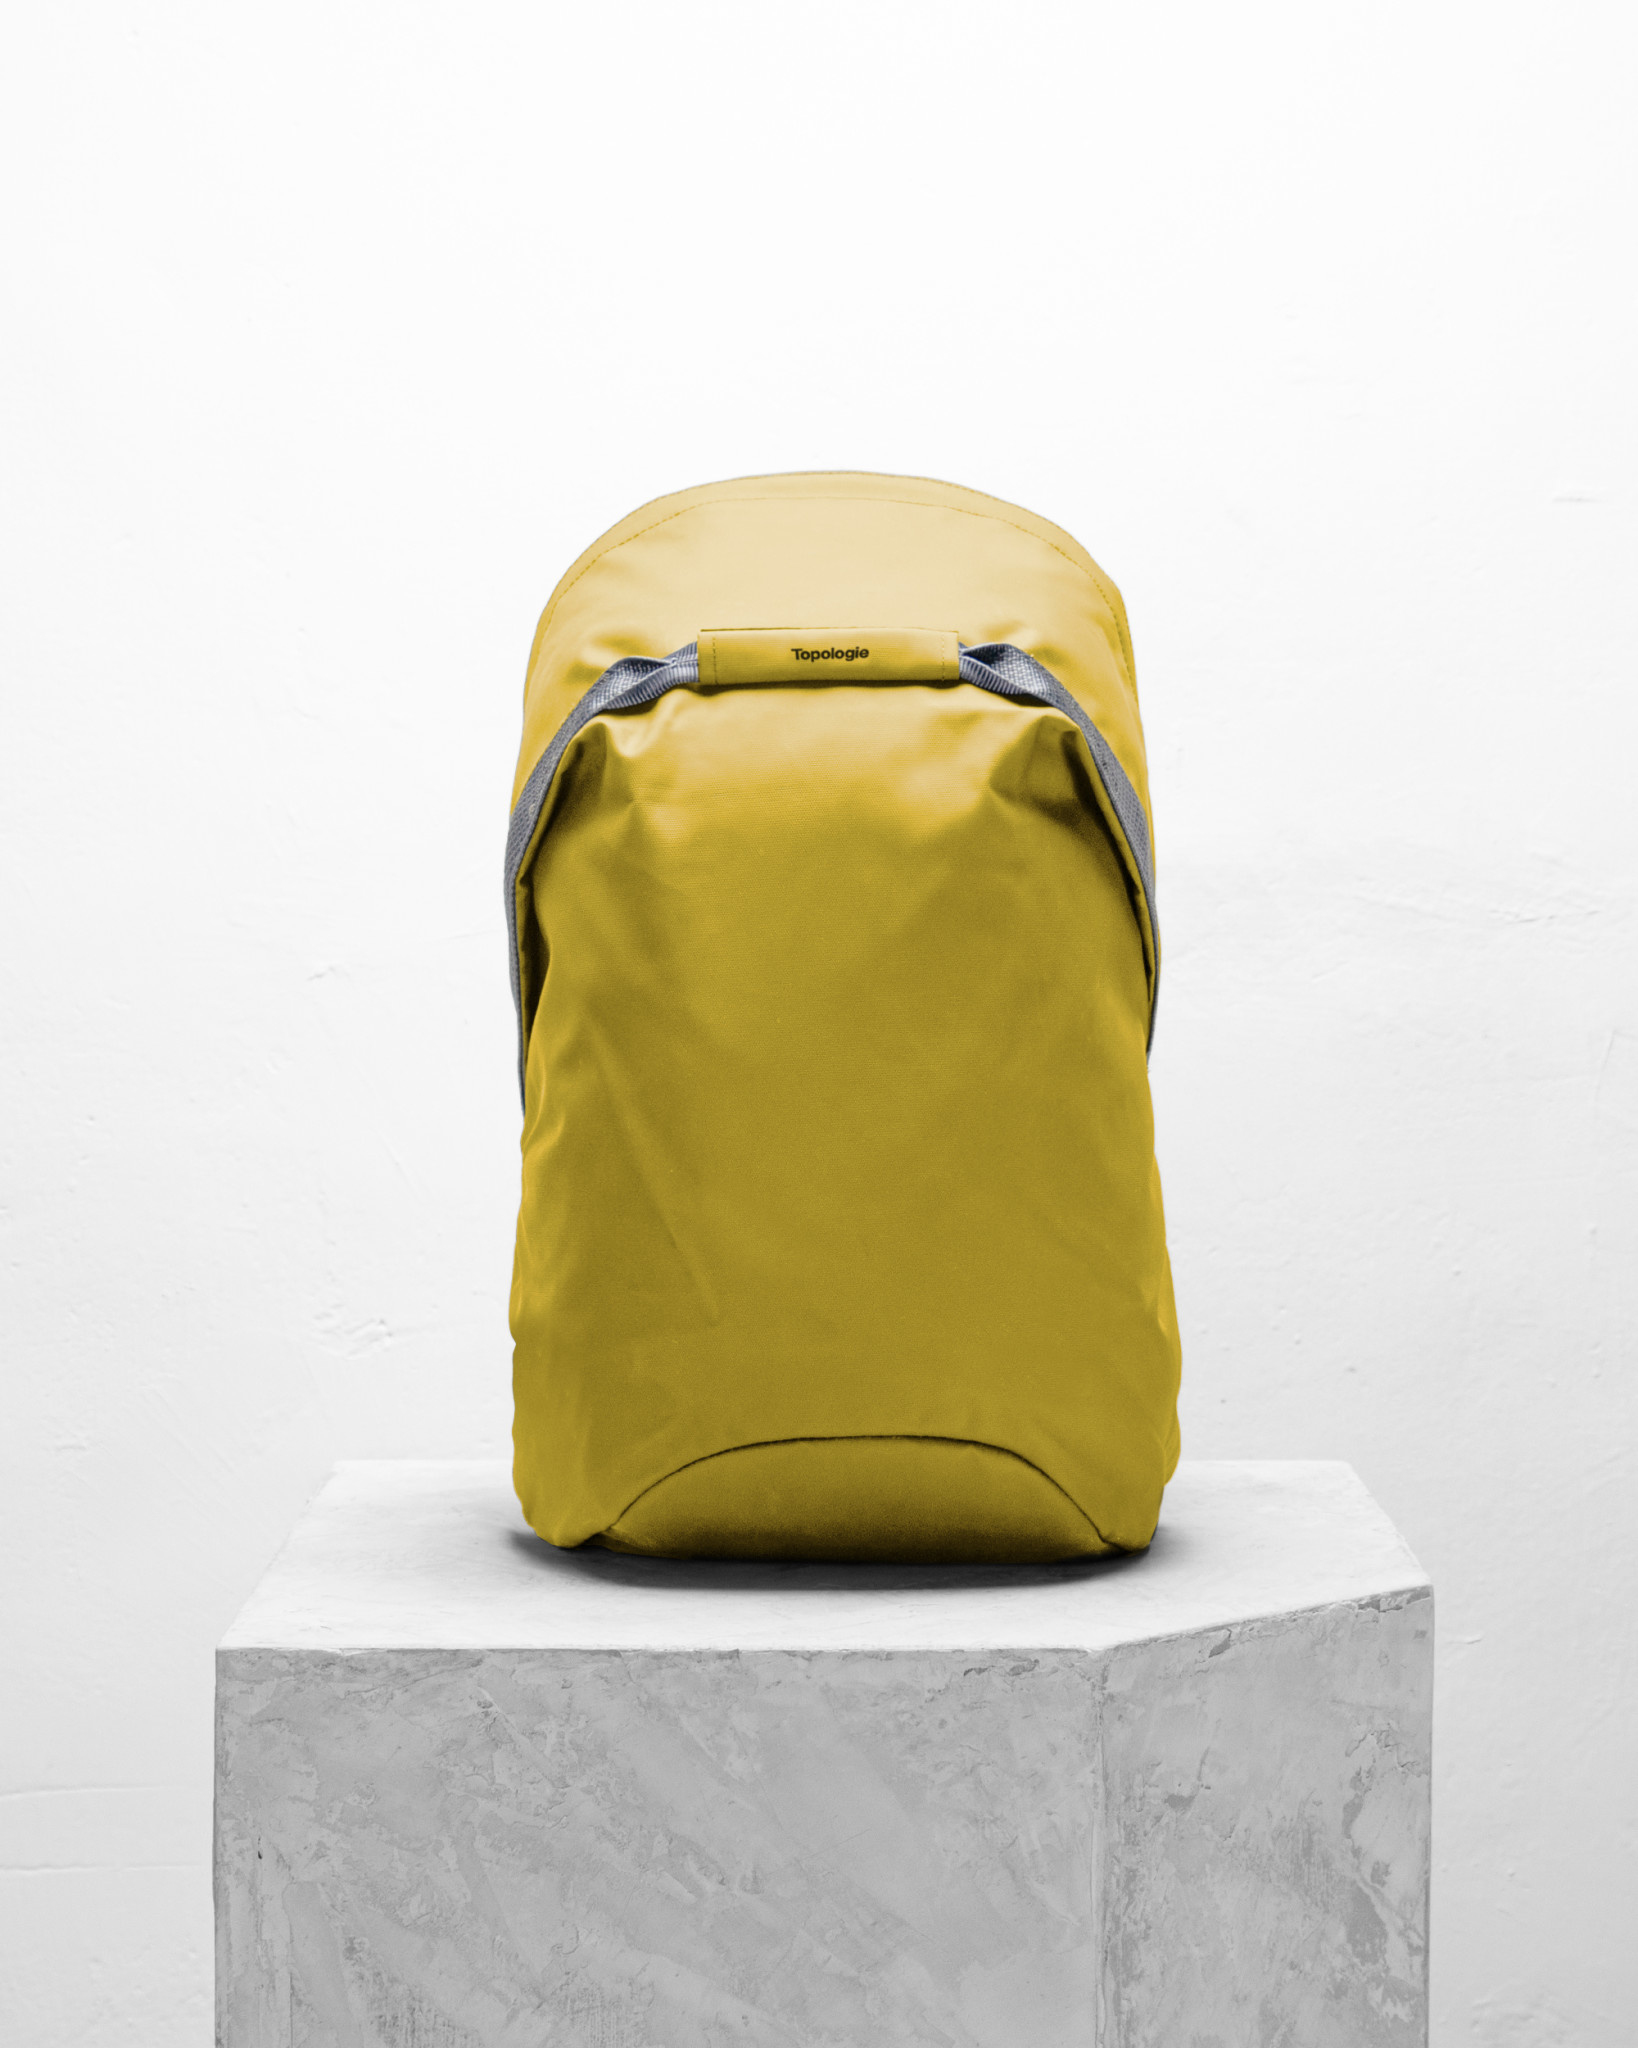 Topologie Topologie Multipitch Backpack (Large) - Sulfur